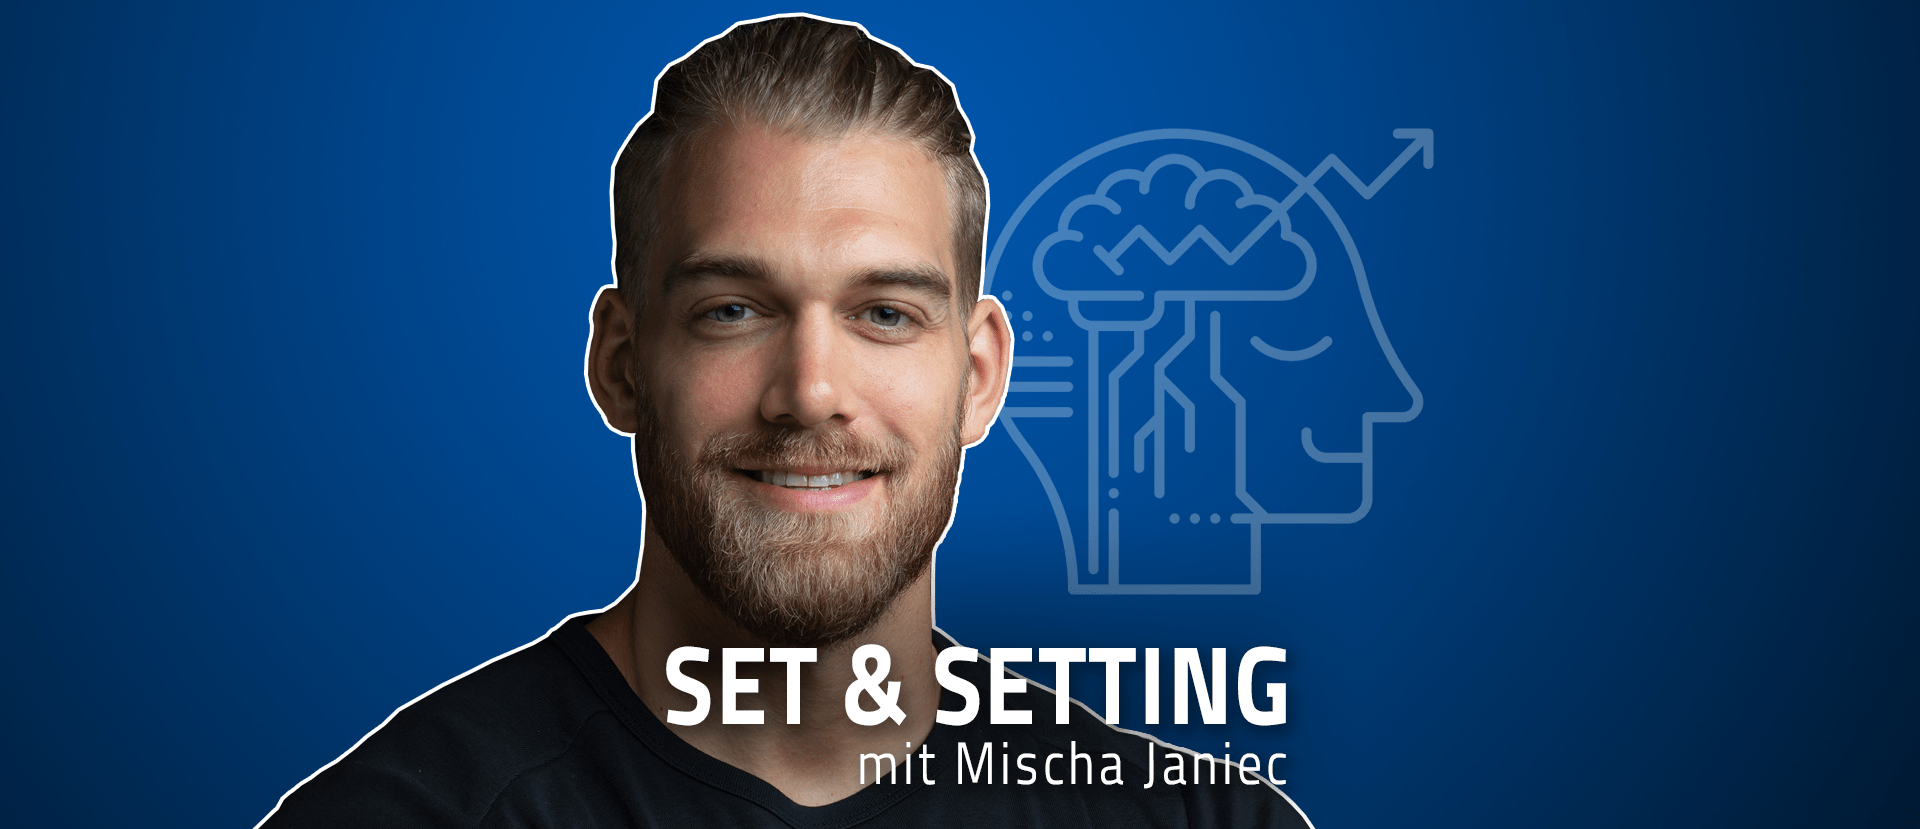 Mischa Janiec Psychedelika Psychedelics Set Setting Jascha Renner Podcast Chainless Life 5 MeO DMT